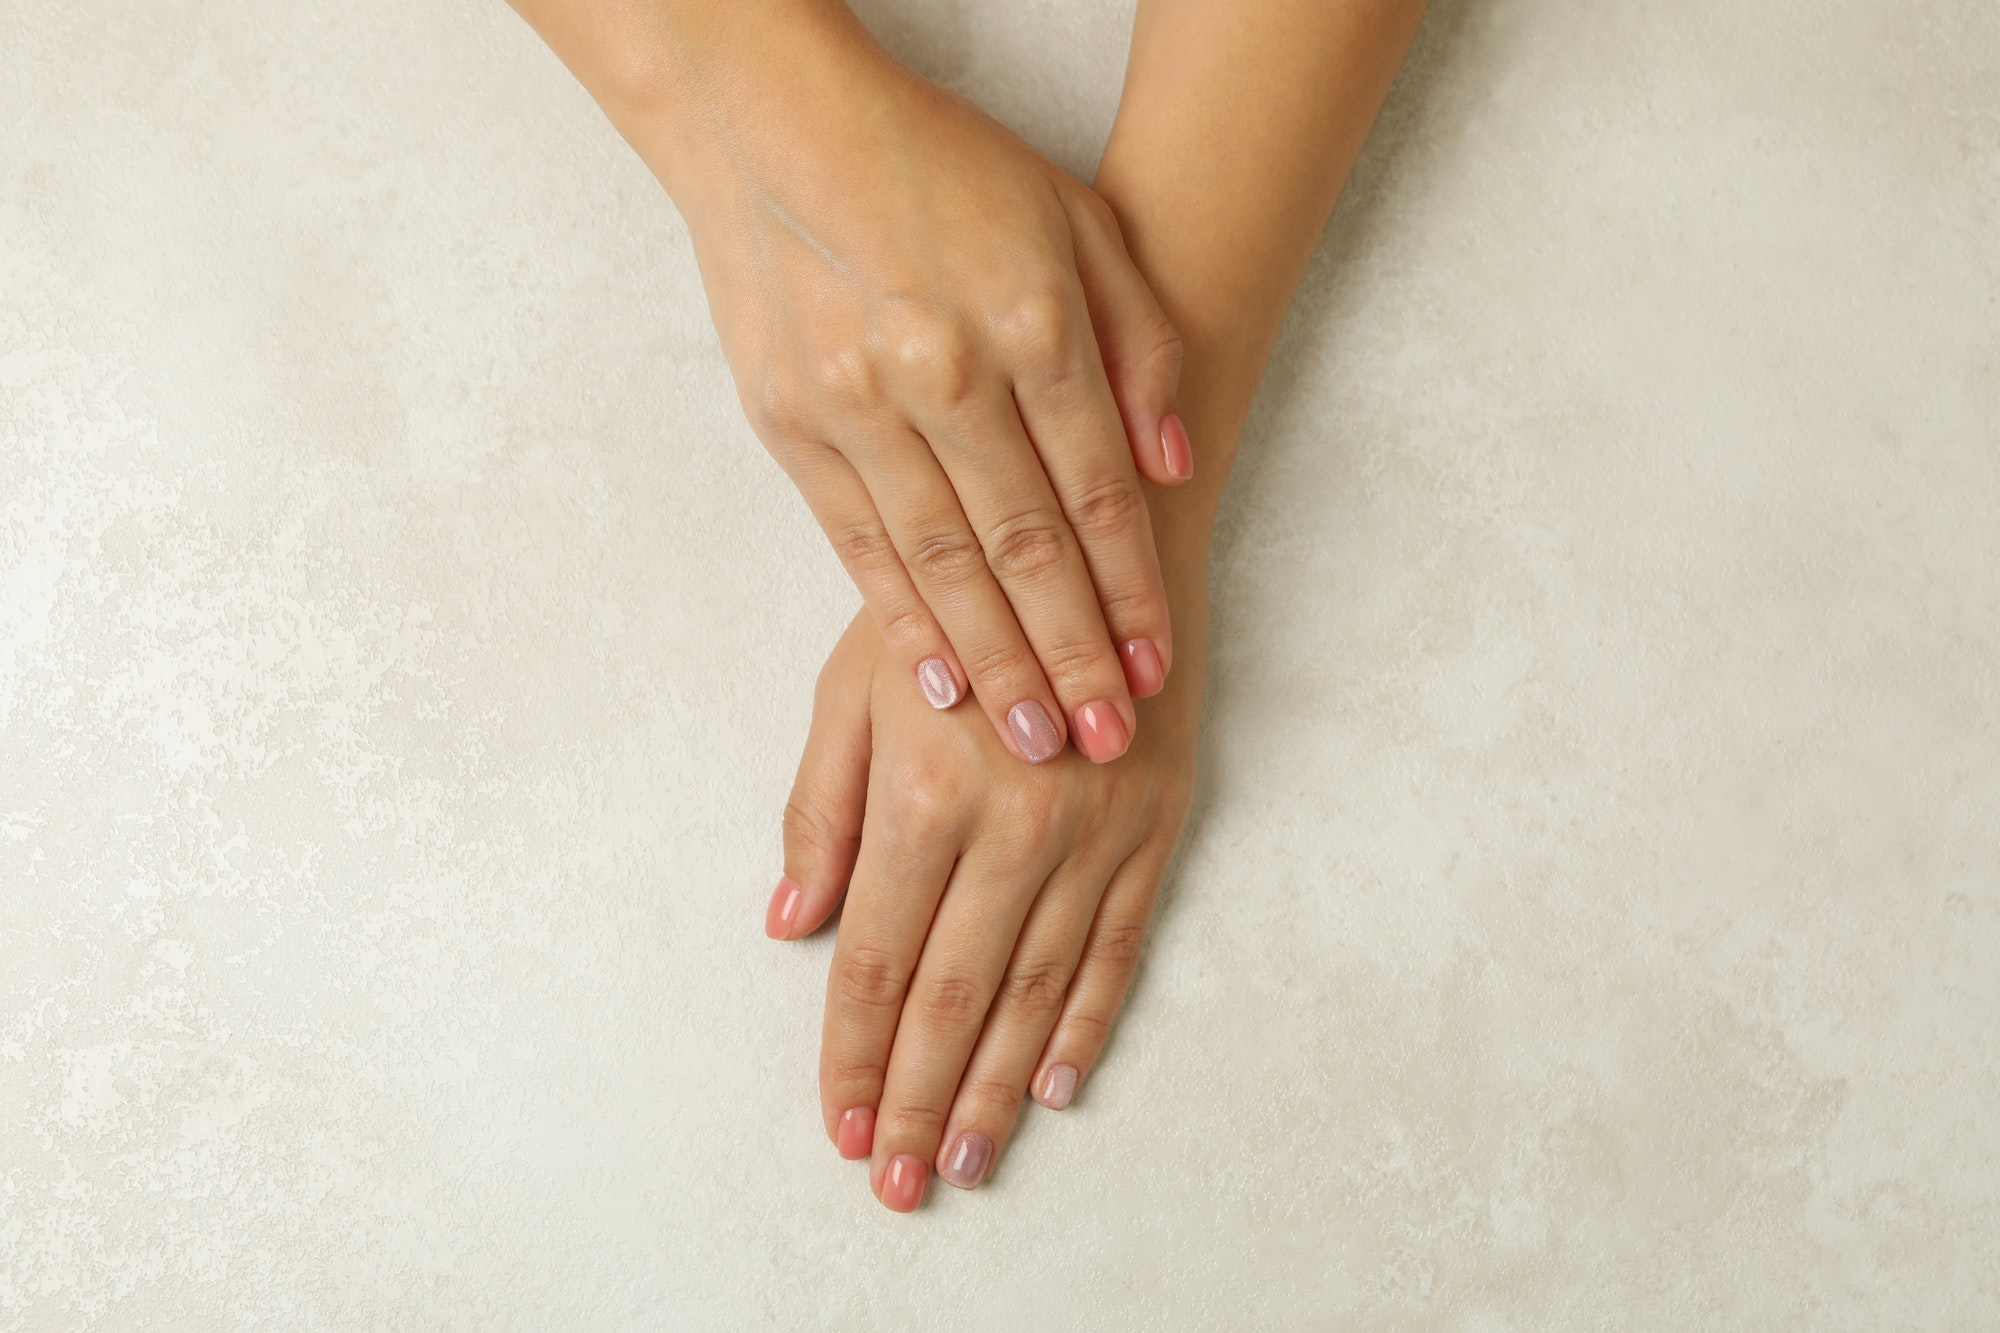 Female hands with pink nails on white background, top view